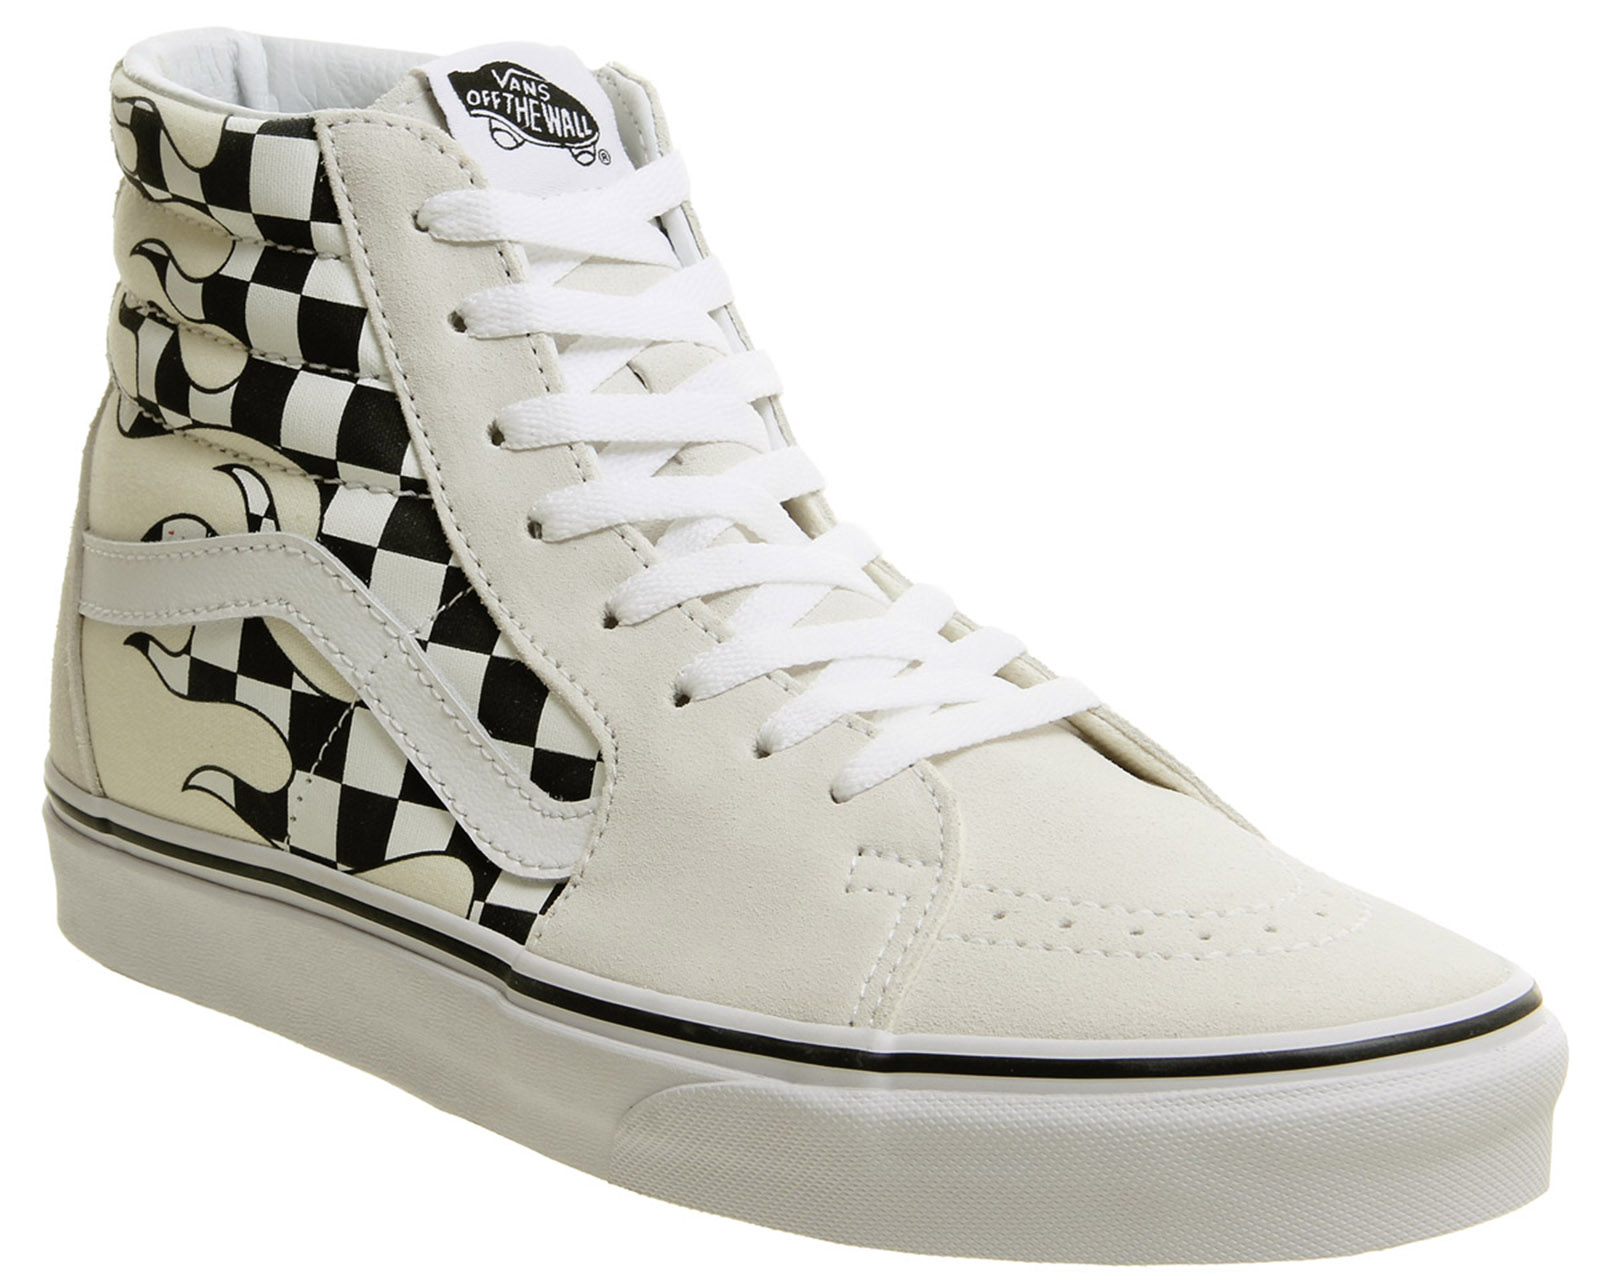 622cb0c4db00 Sentinel Mens Vans Sk8 Hi Trainers Classic White Flame Checker Trainers  Shoes